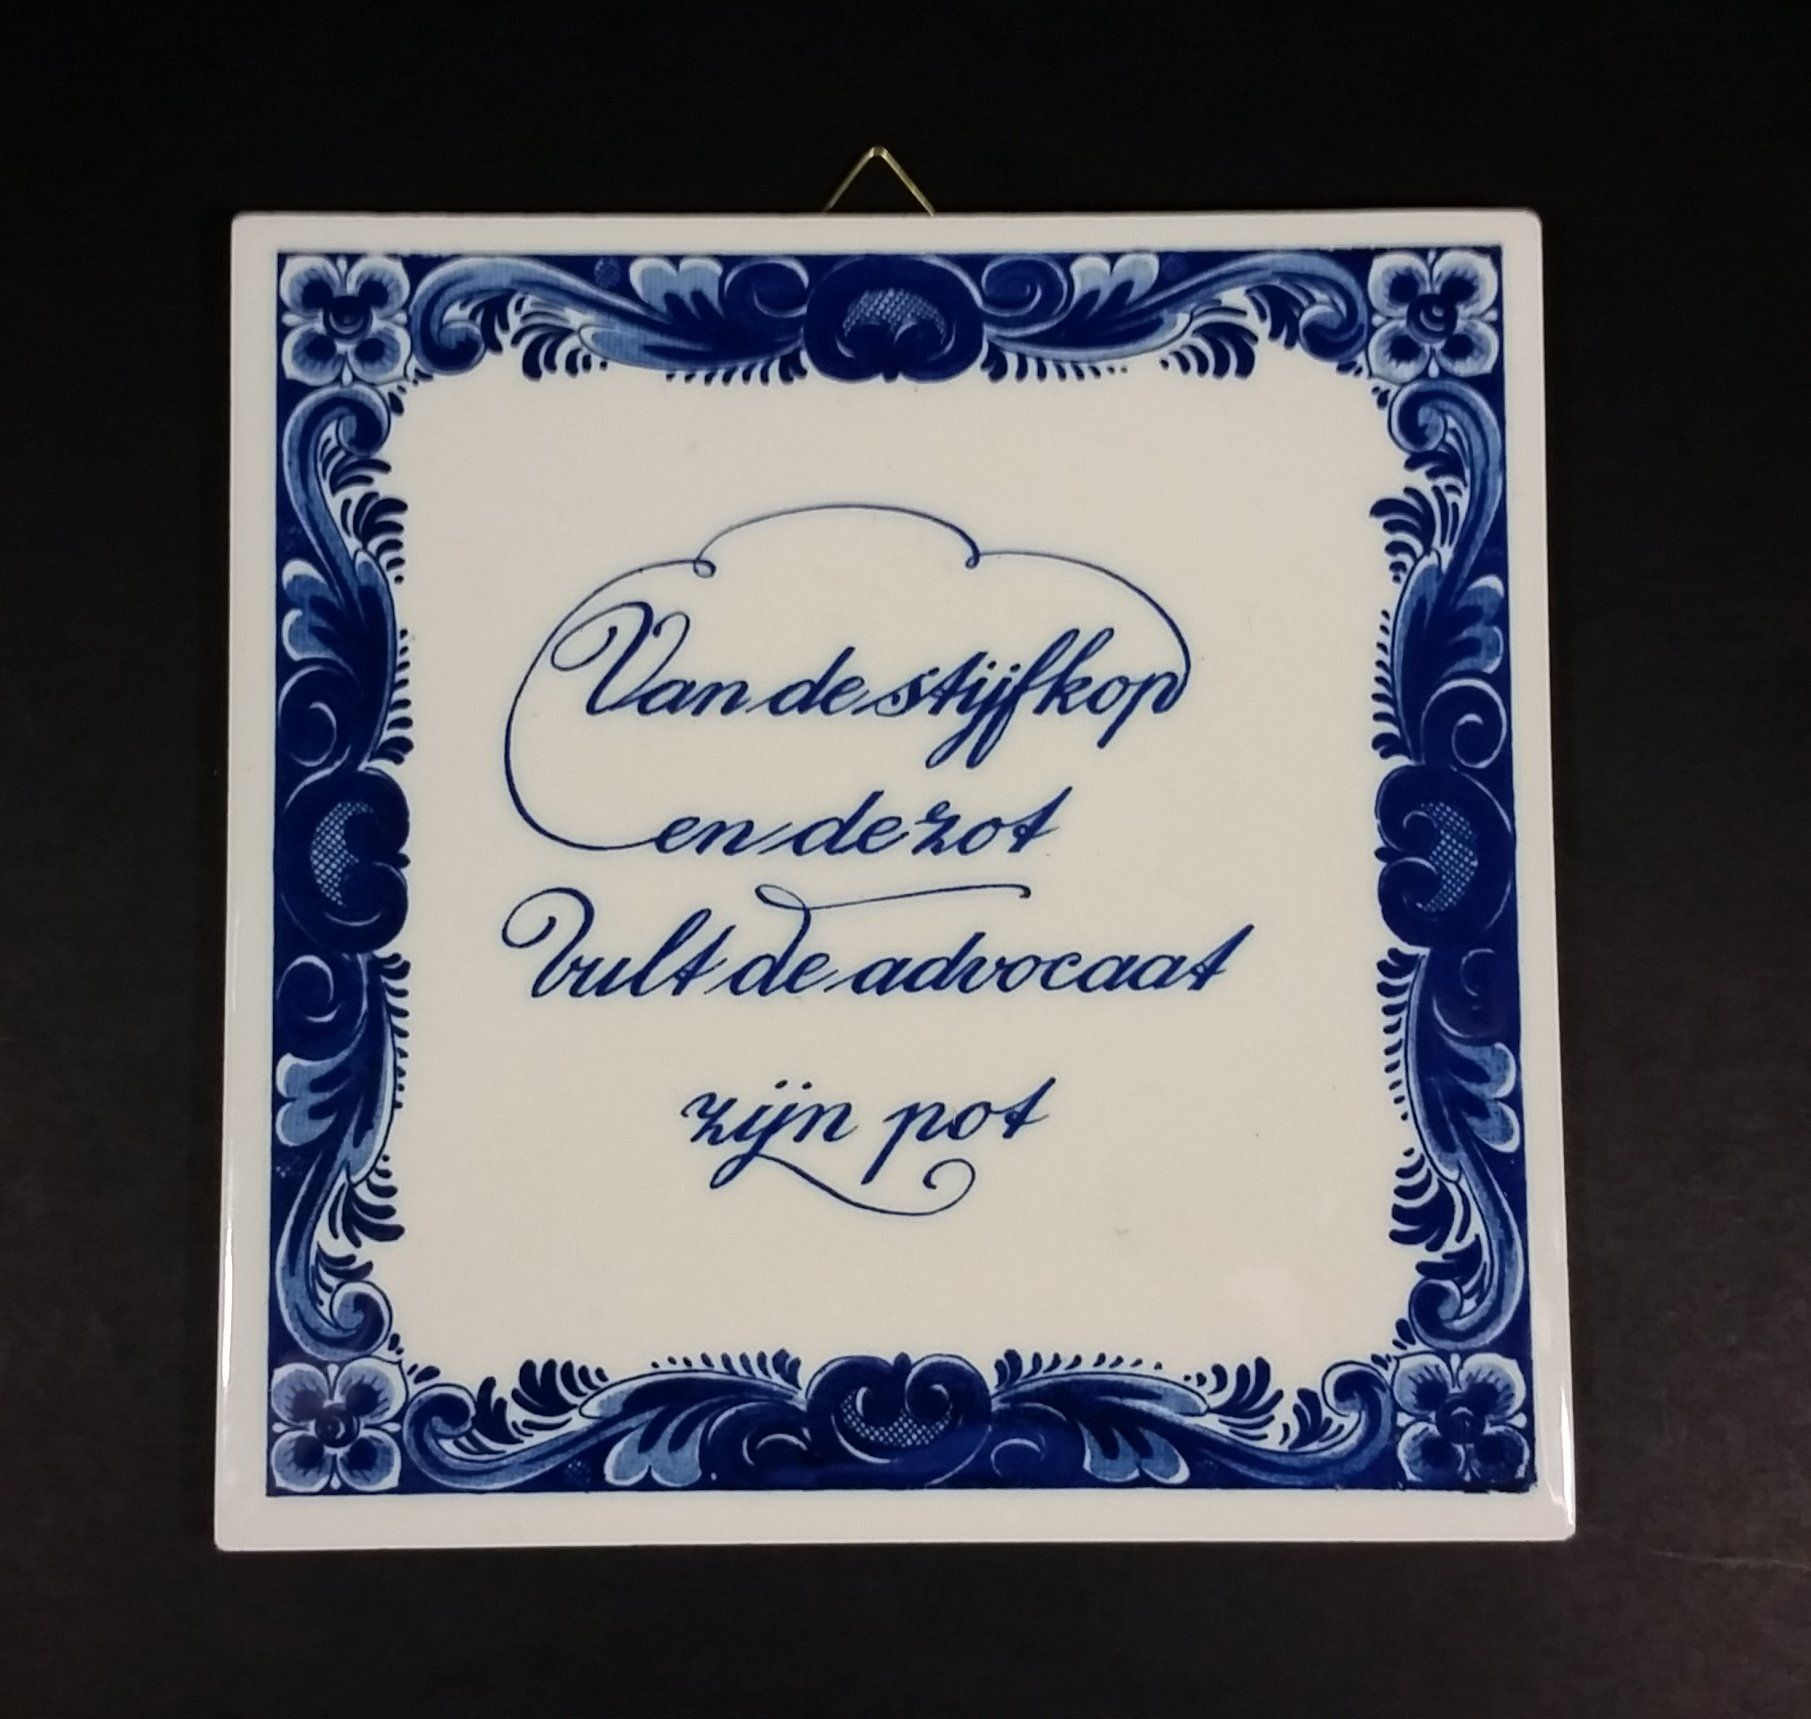 Vintage delft blue holland from the arrogant and foolish the lawyer vintage delft blue holland from the arrogant and foolish the lawyer becomes rich ceramic tile trivet dailygadgetfo Image collections